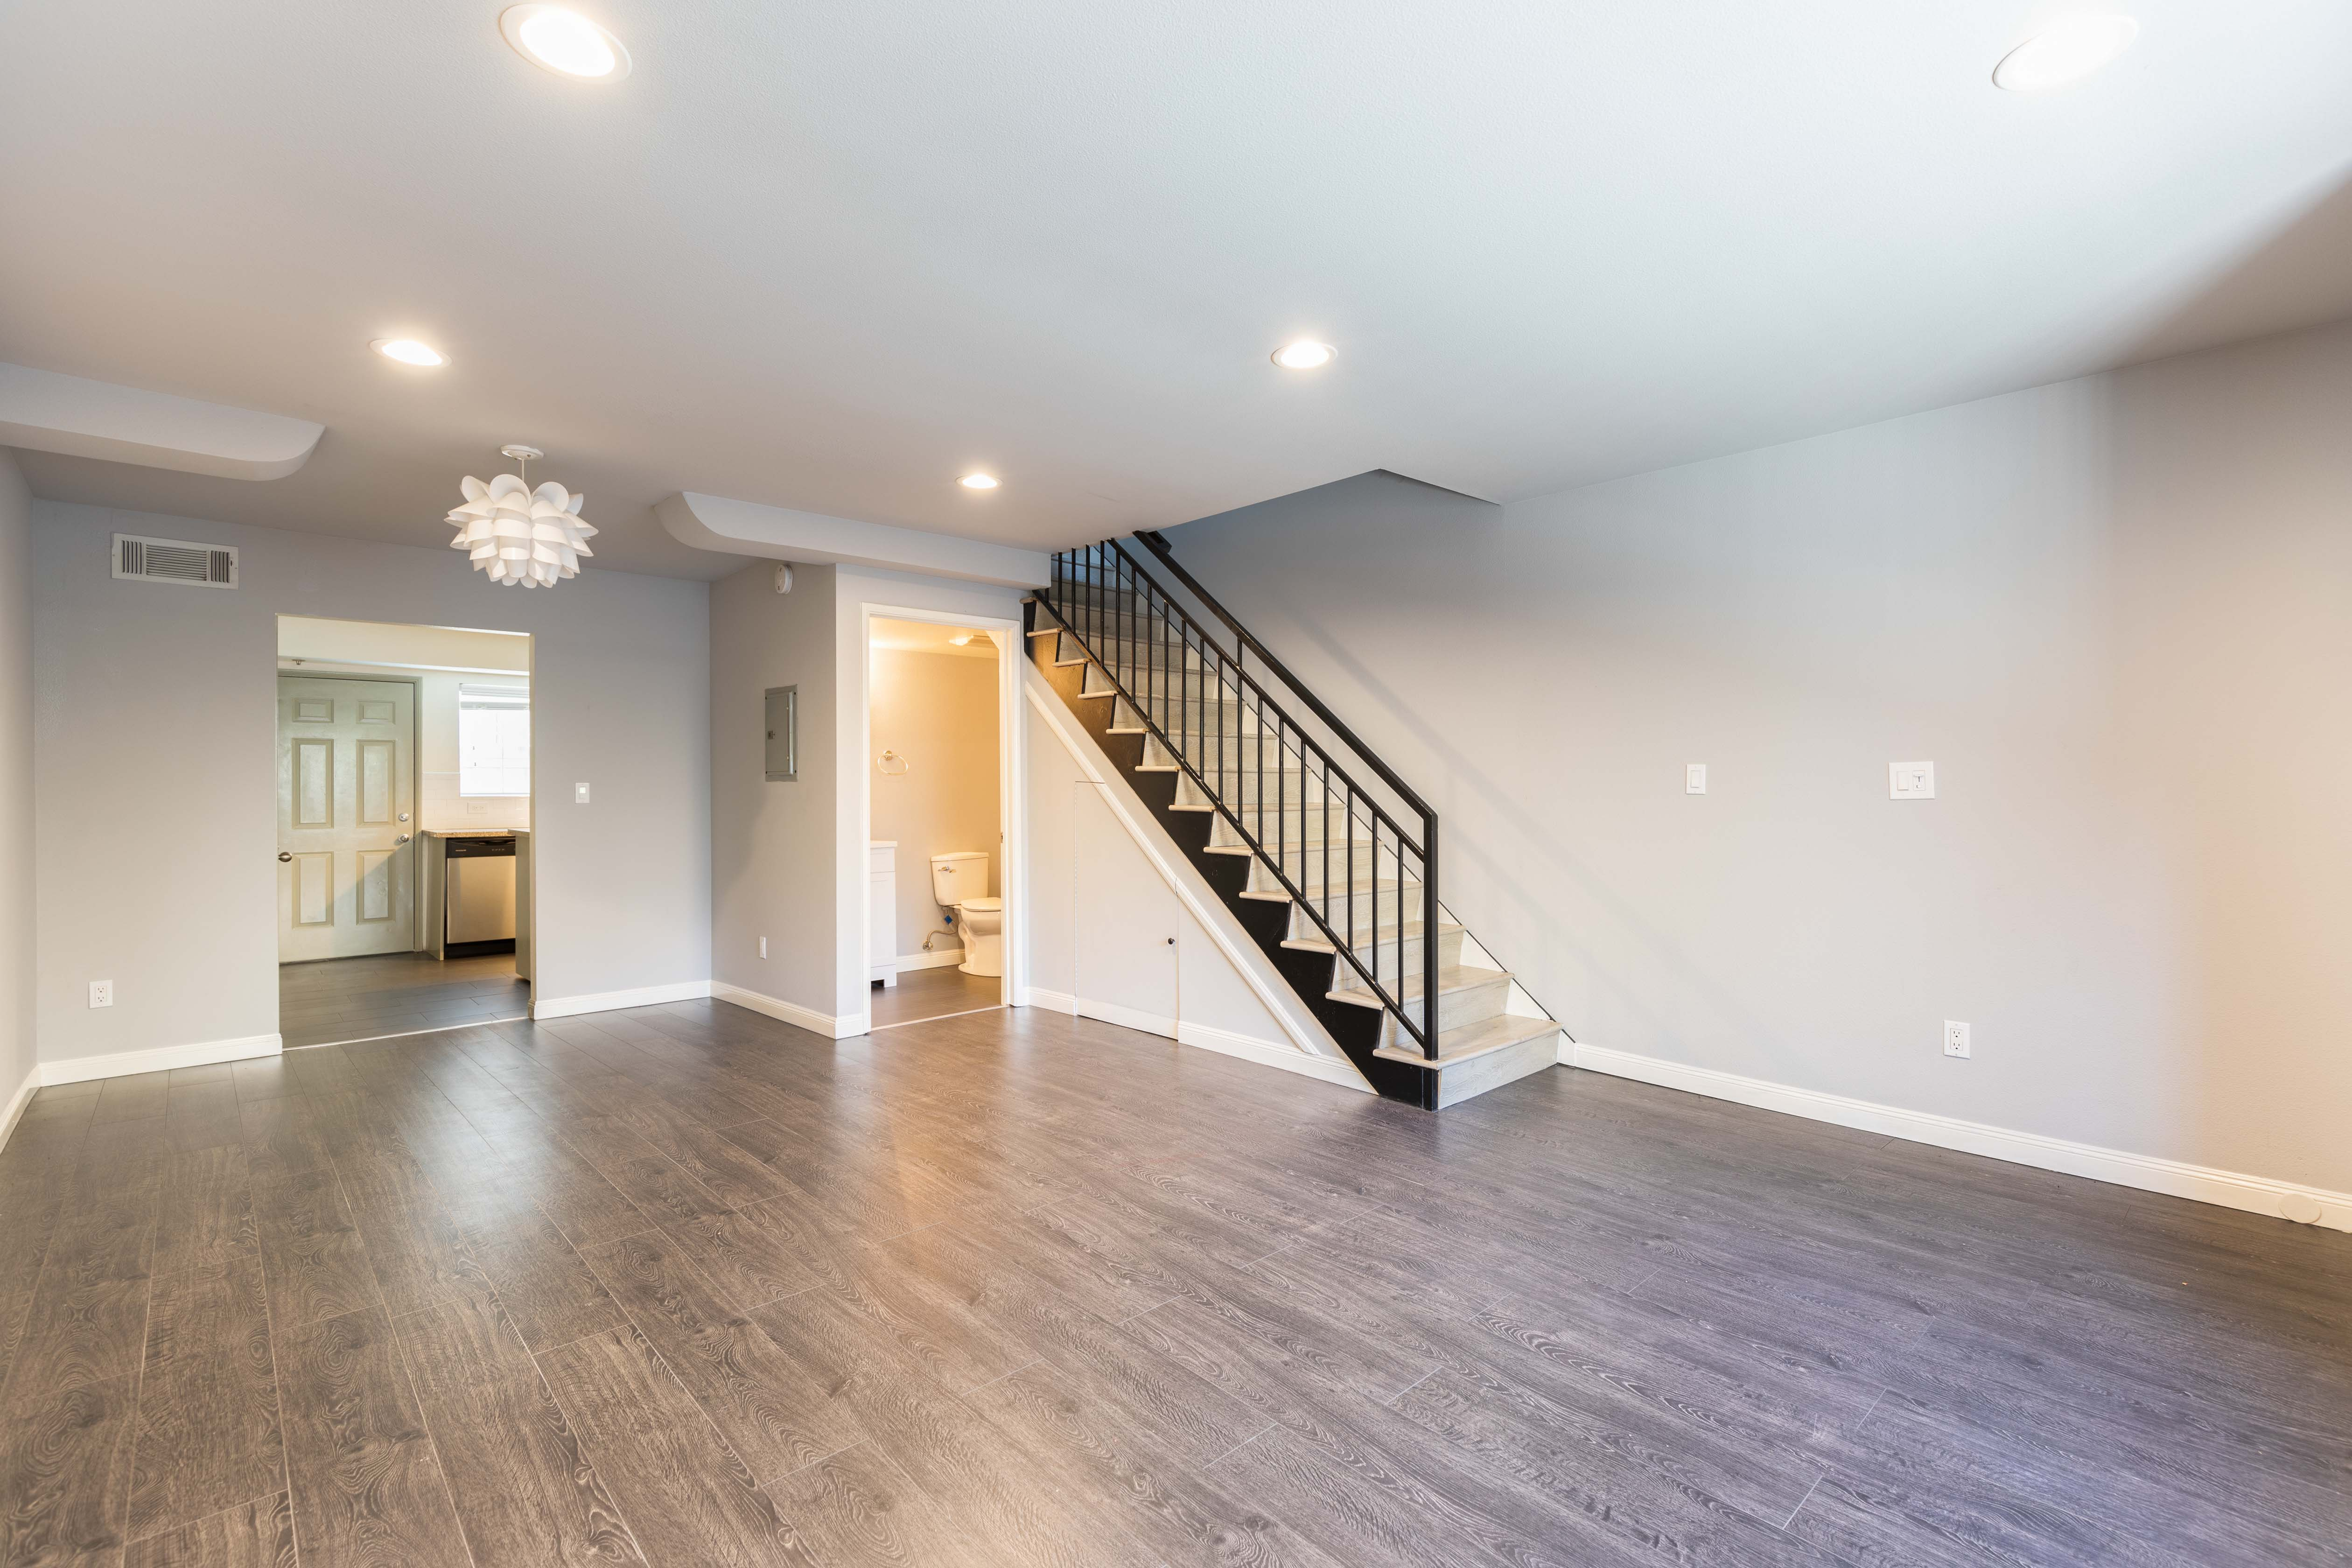 Two-Story Hollywod Dream Apartment w/ Two Parking Spaces, a Balcony, and Gated Private Patio